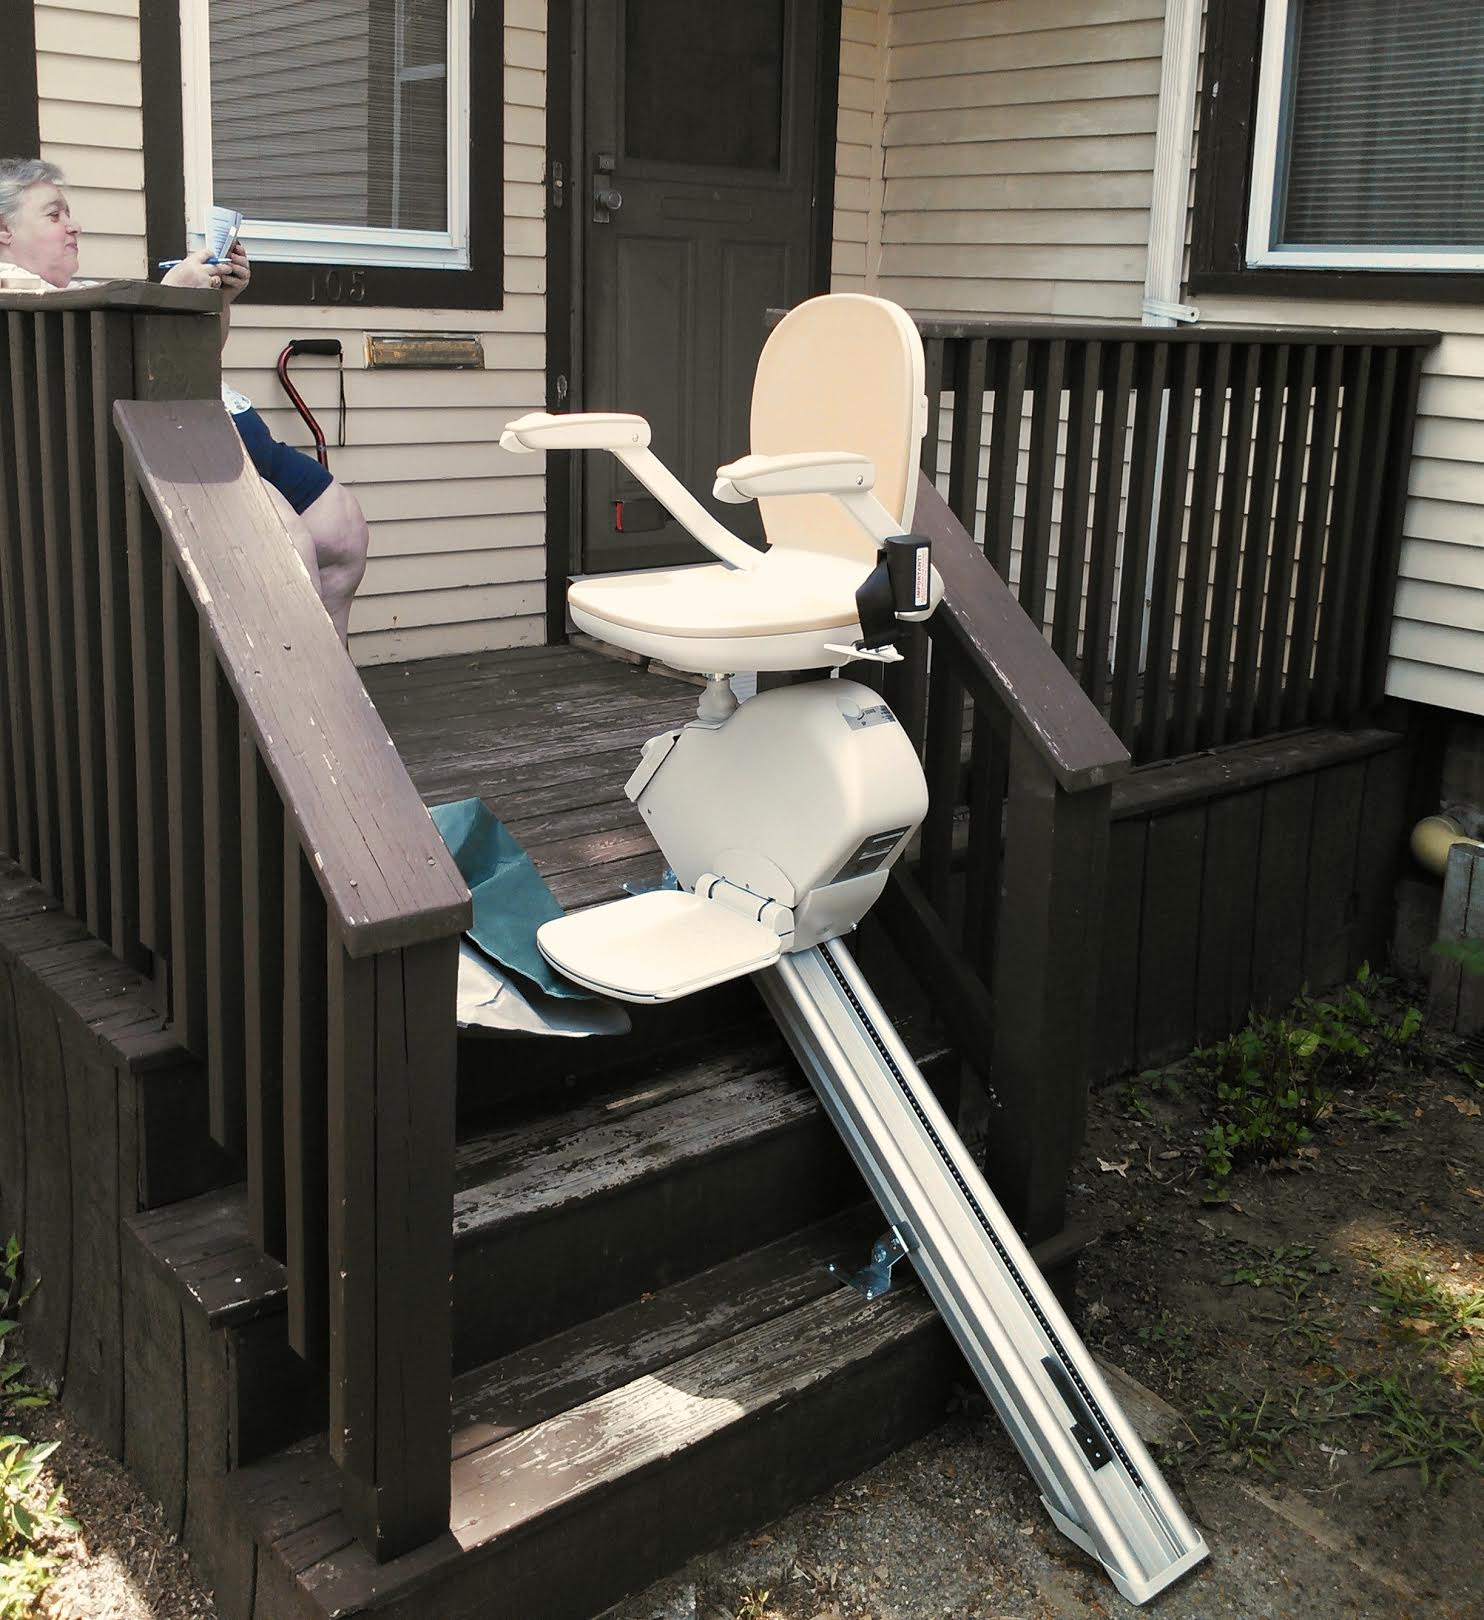 Outdoor stair lift - Contact Us Now For Your Consultation And Quotation And Speak To One Of Our Experienced Stairlift Specialists